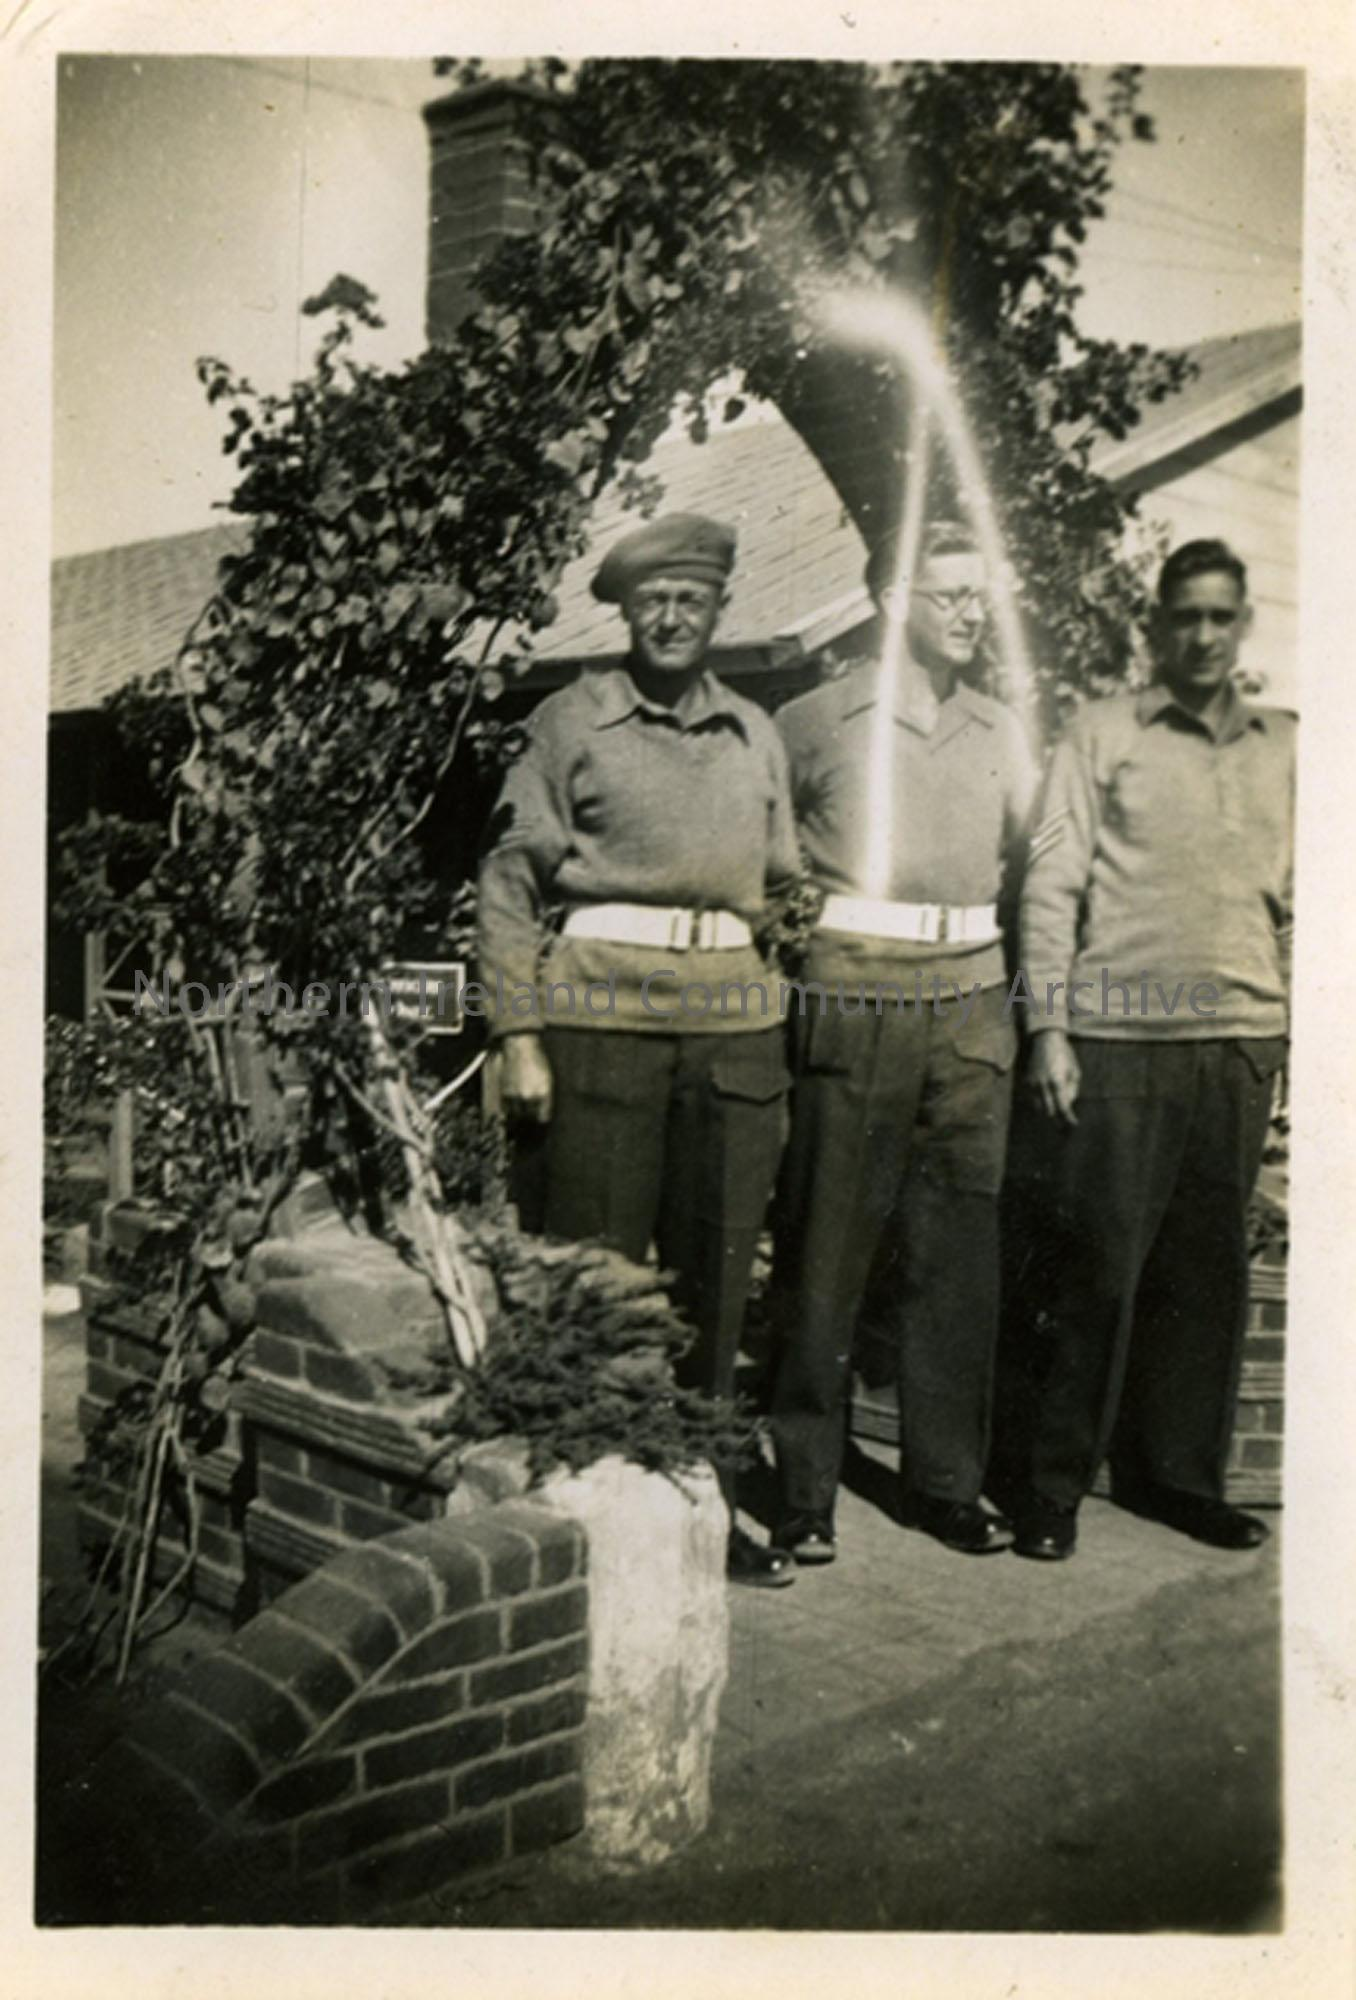 Photo of 3 soldiers